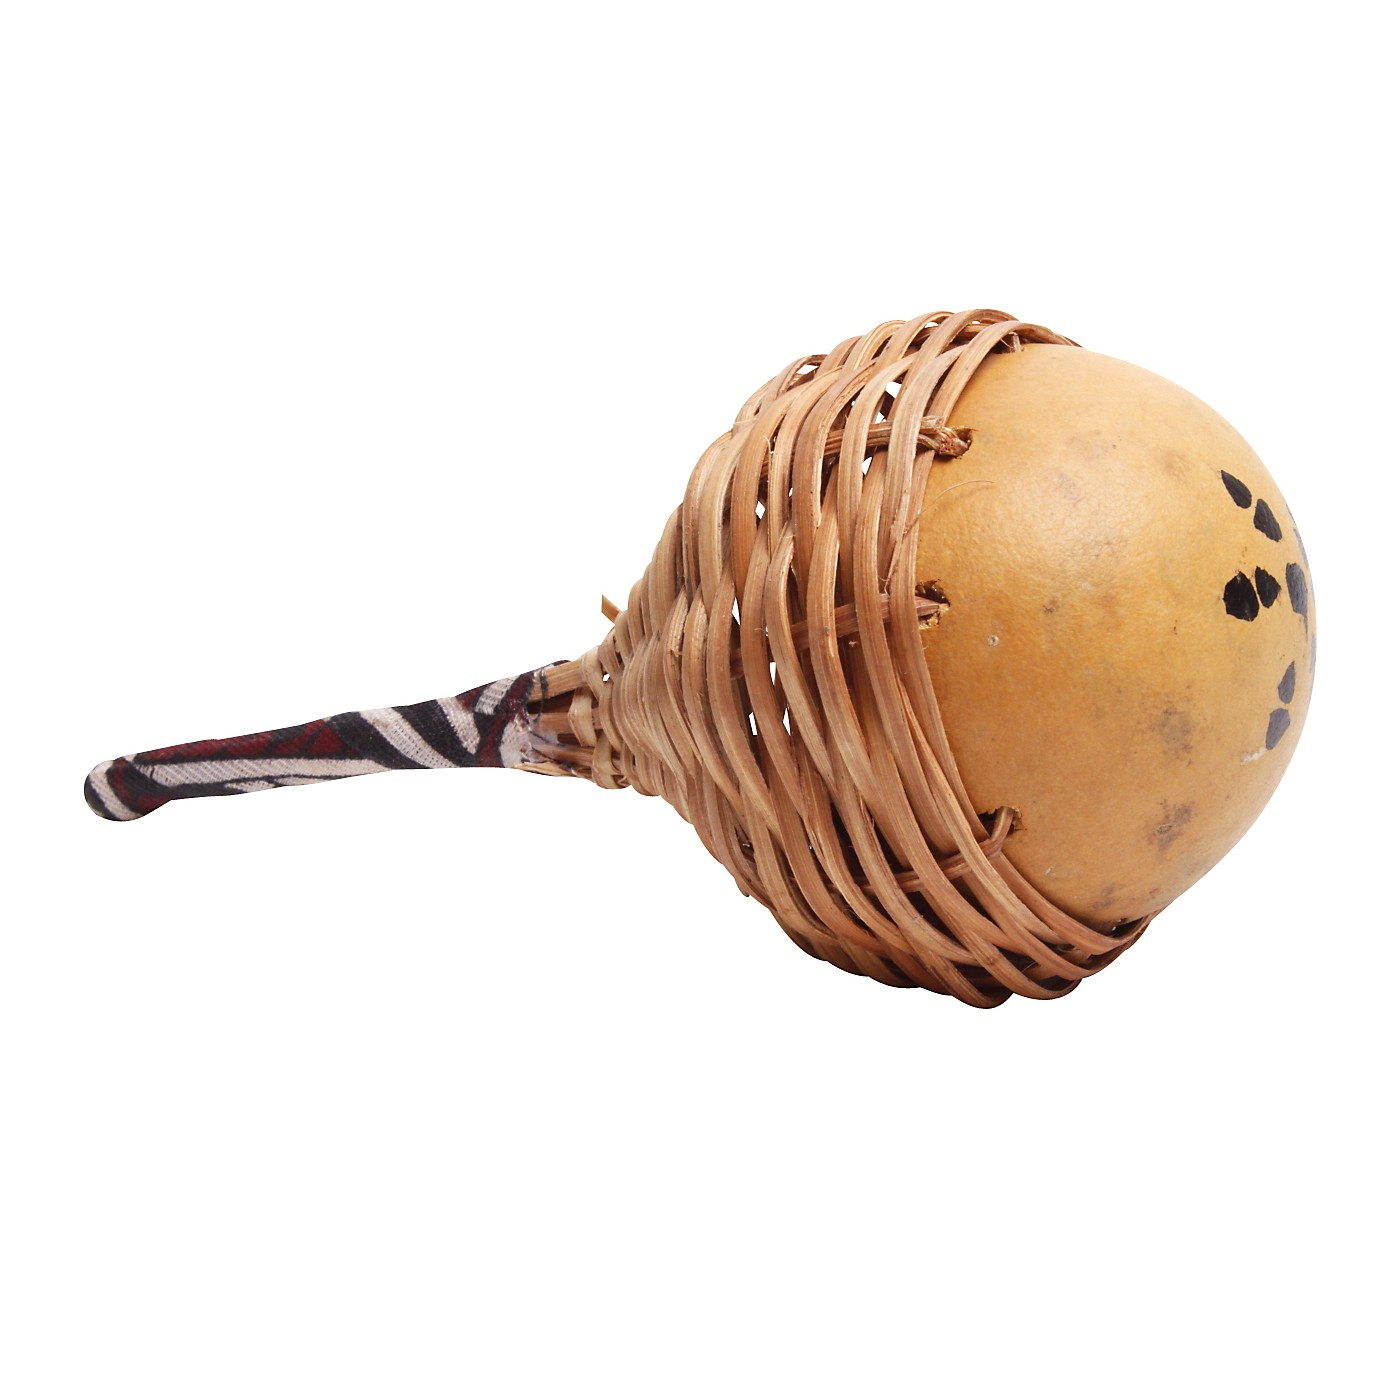 Overseas Connection Rhythmkids Calabash Rattle thumbnail